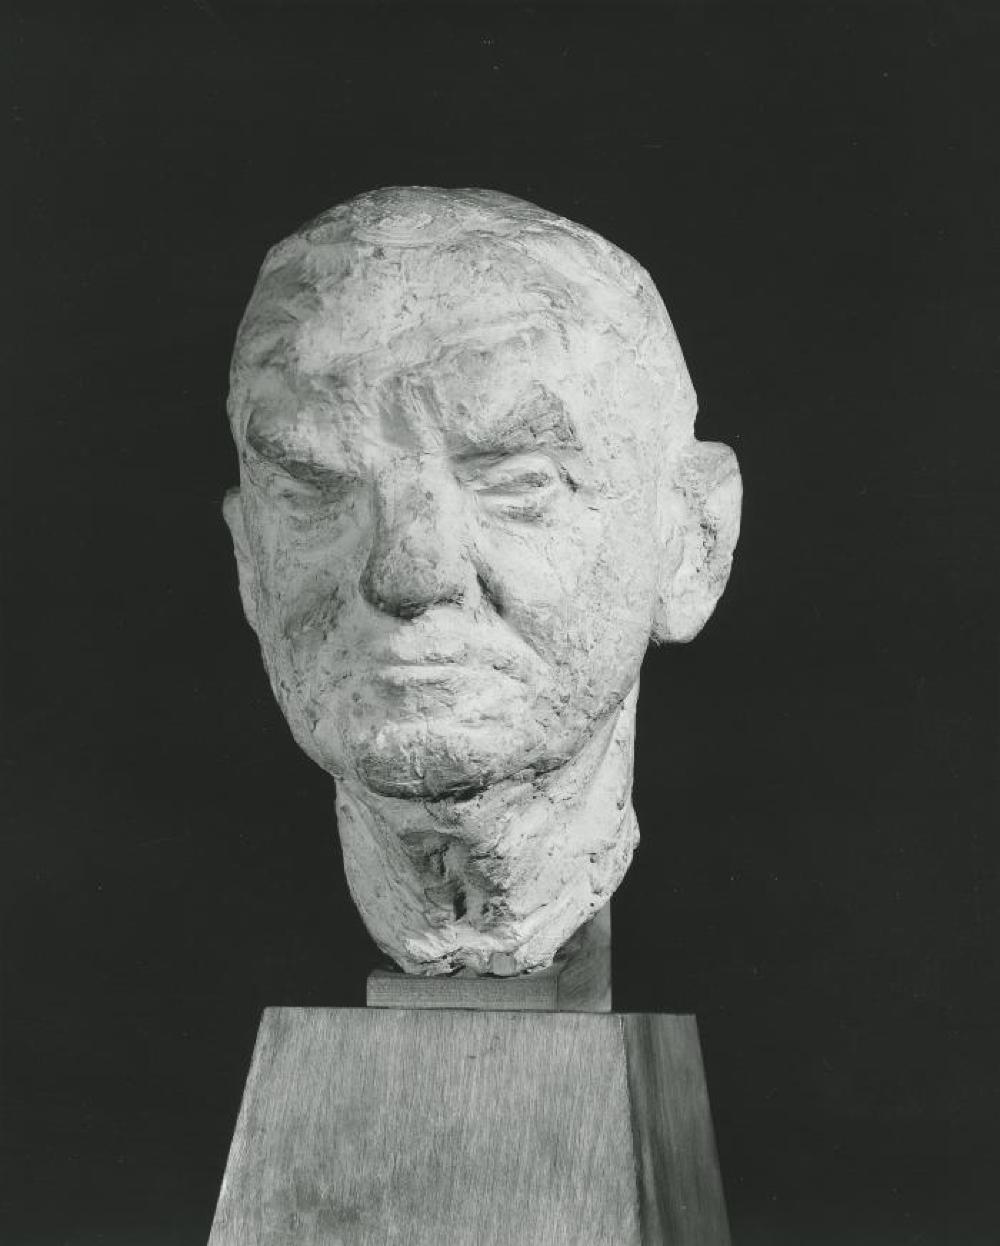 A. Conger Goodyear, image 4